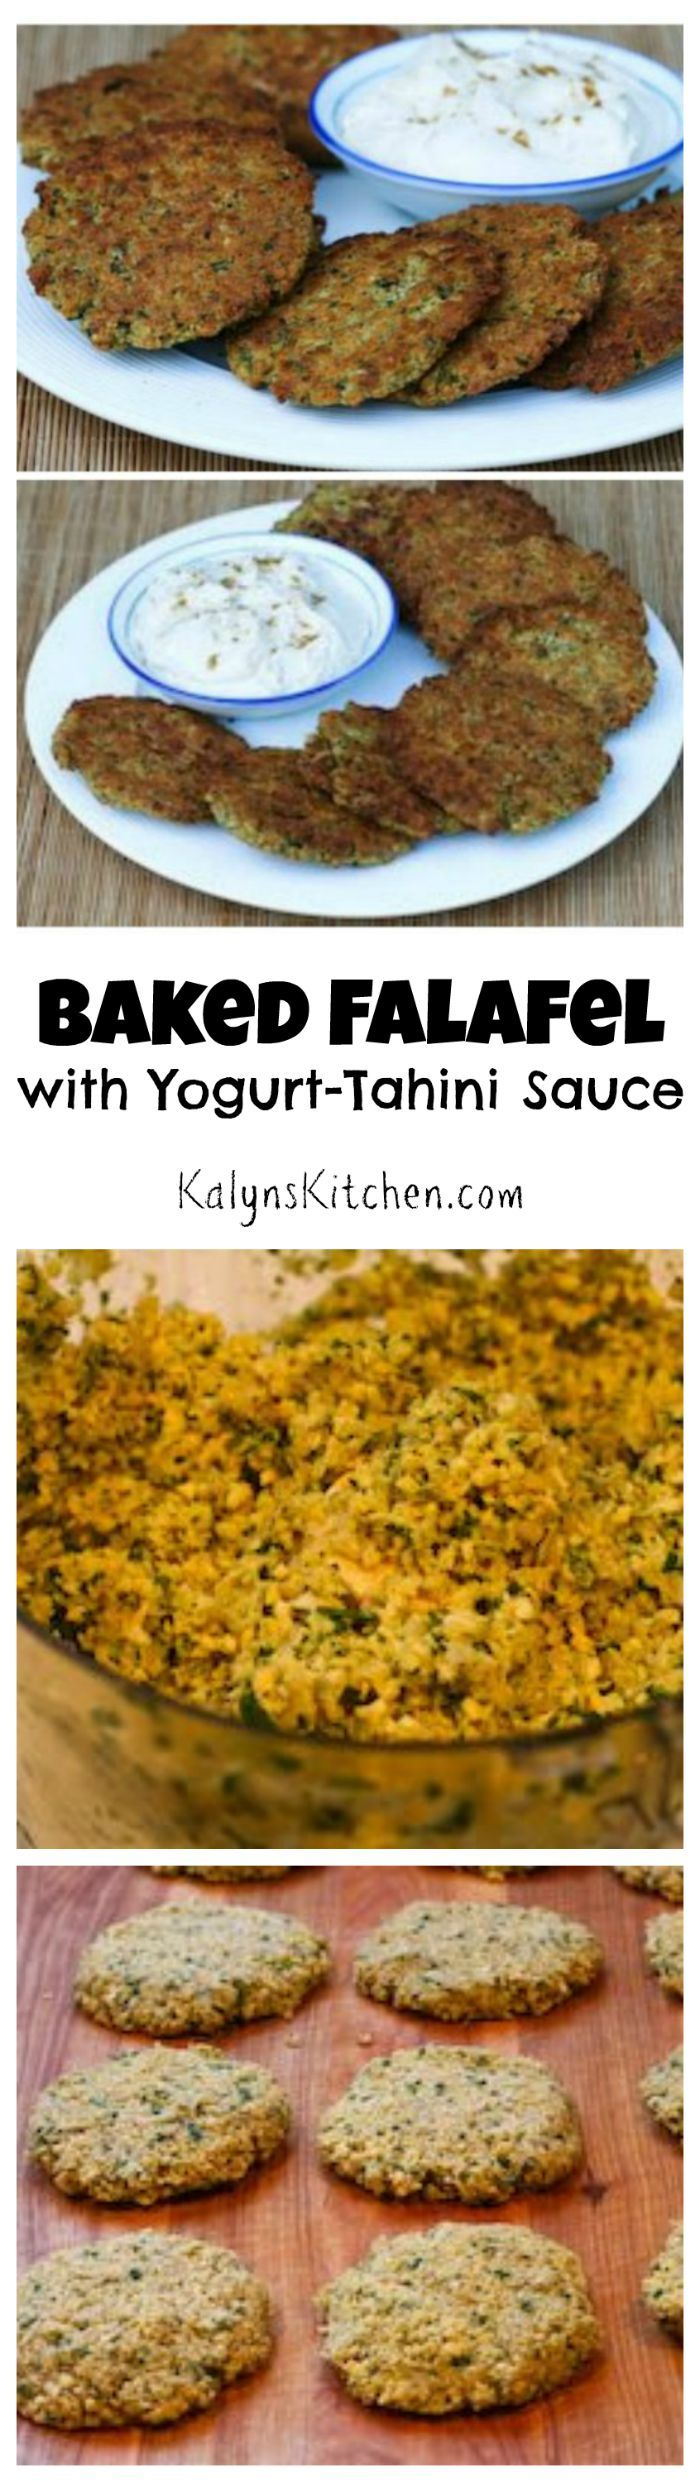 For everyone who's a fan of delicious Falafel, make these Baked Falafel Patties with Yogurt-Tahini Sauce at home! I've tried this recipe out on a lot of falafel fans, and it's always a hit! [from KalynsKitchen.com]